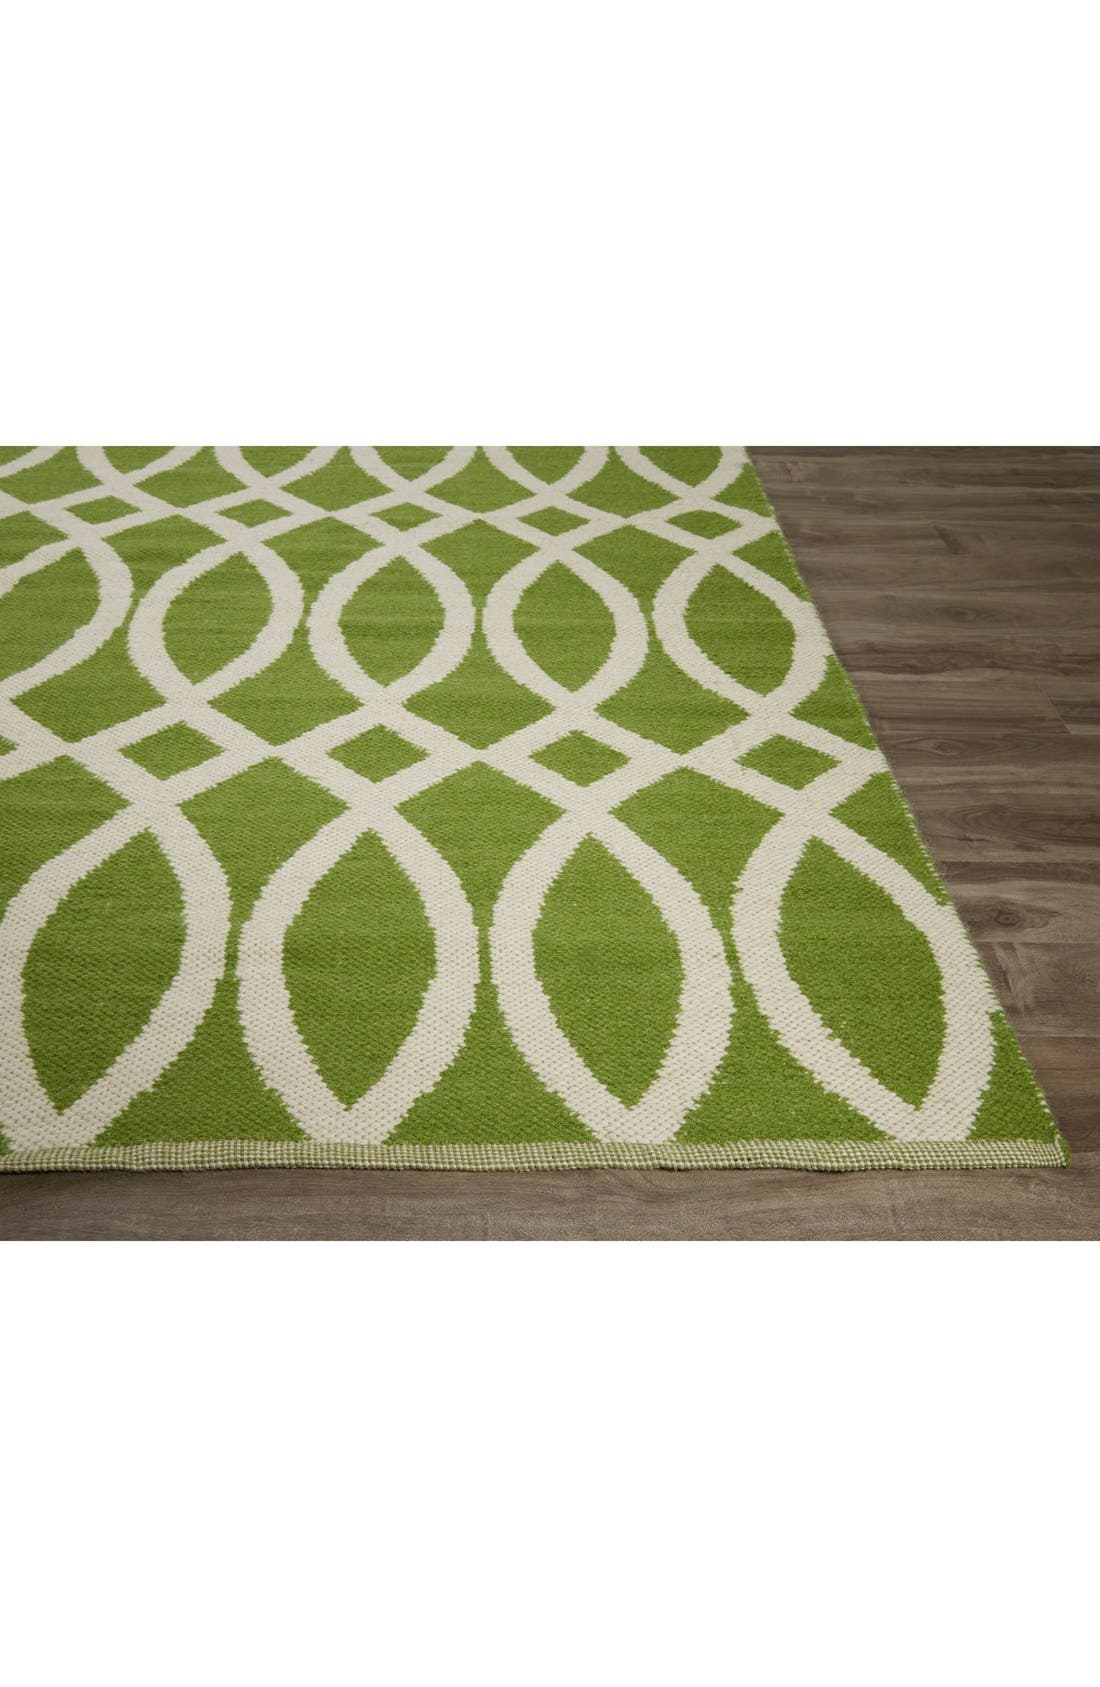 Alternate Image 3  - kate spade new york 'roosevelt' hand woven reversible wool & cotton rug